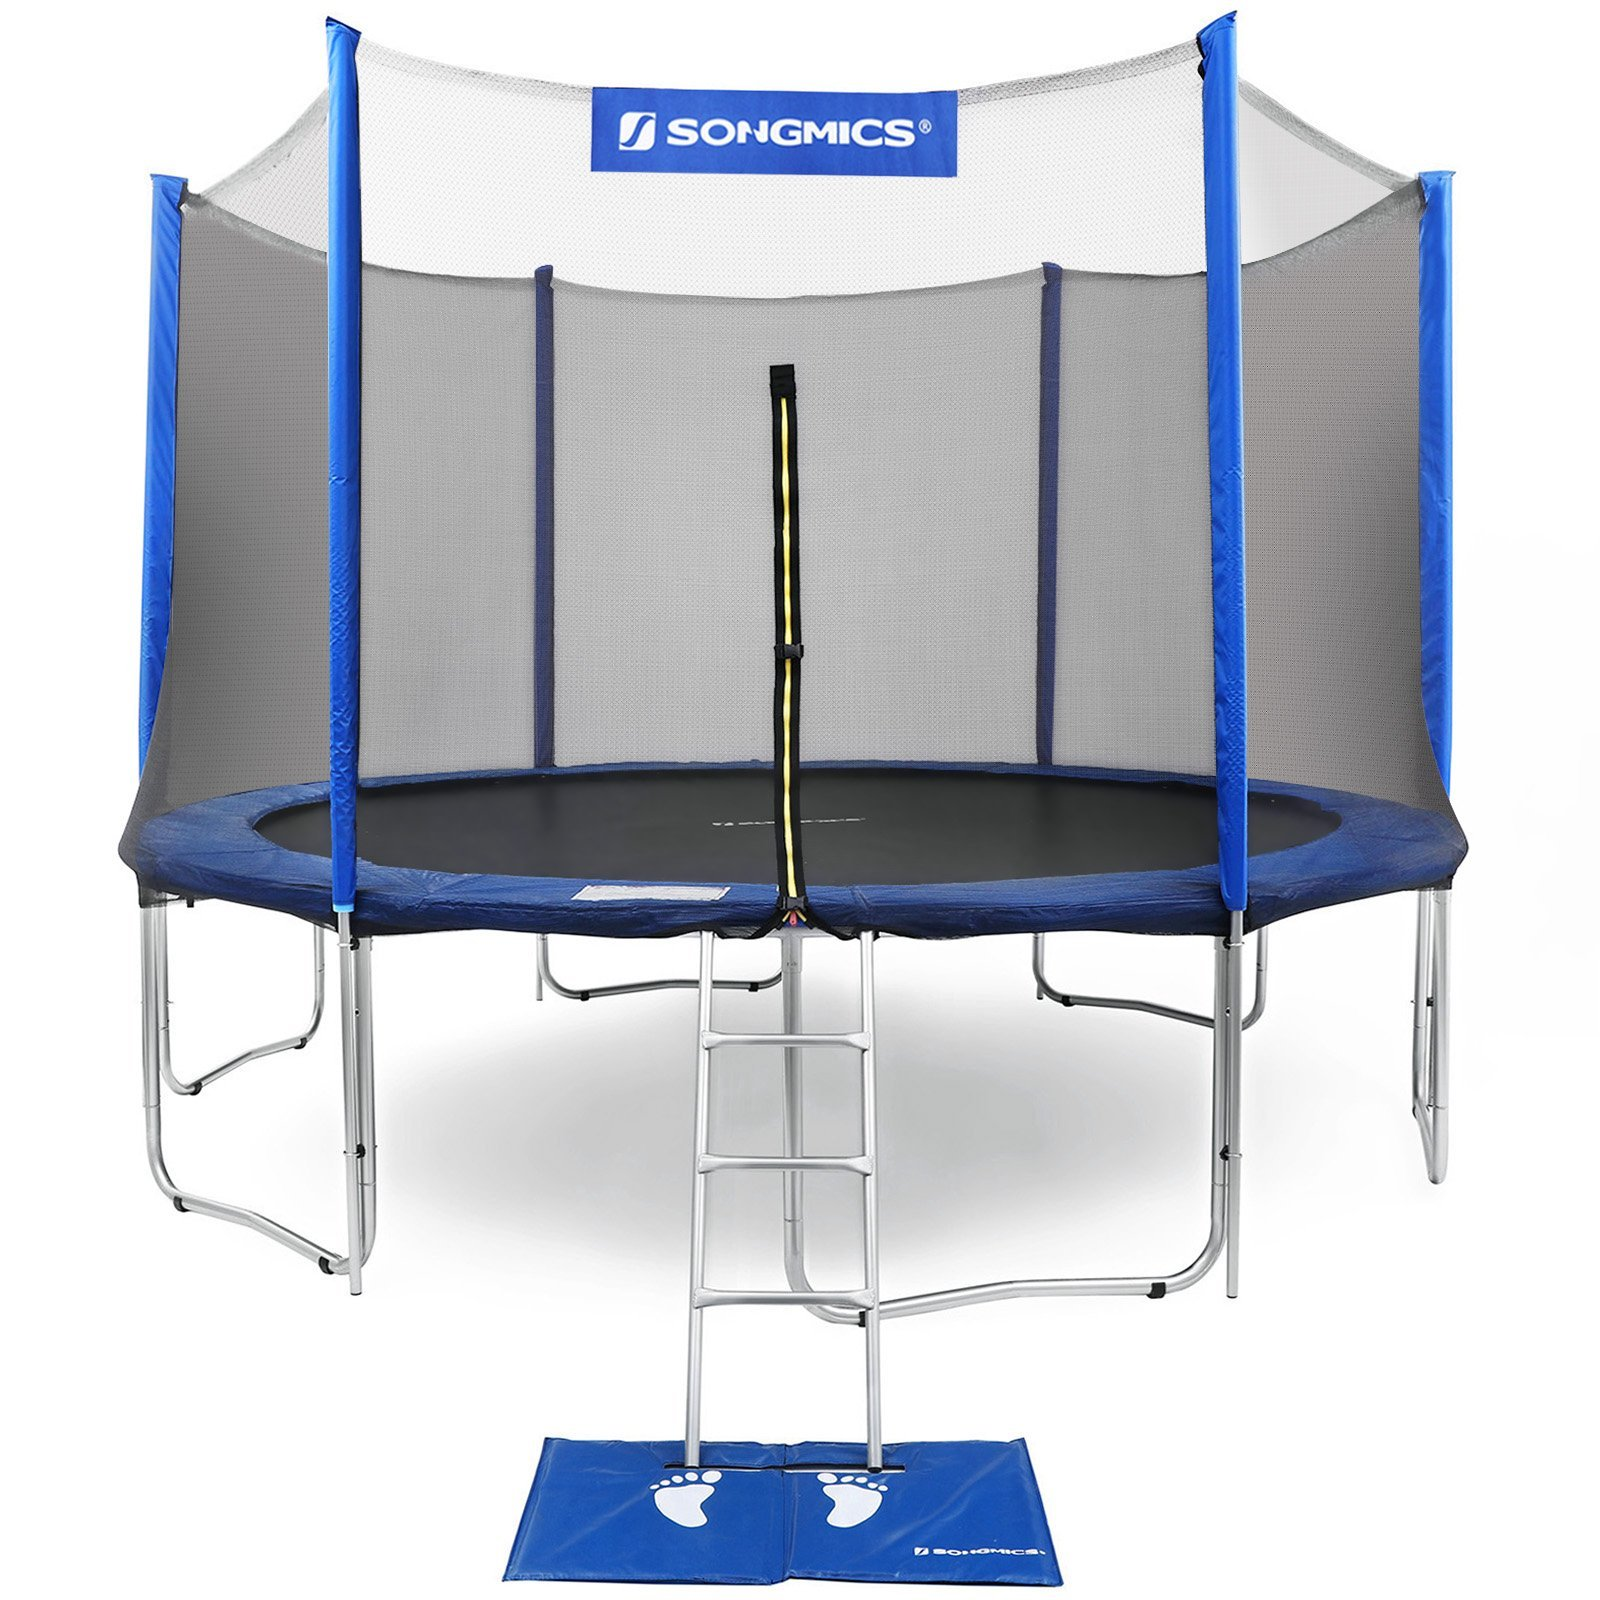 SONGMICS Outdoor Trampoline 12-Feet for Kids with Enclosure Net Jumping Mat and Spring Cover Padding TÜV Rheinland Certificated According to ASTM and GS Standard Blue USTR12FT by SONGMICS (Image #1)